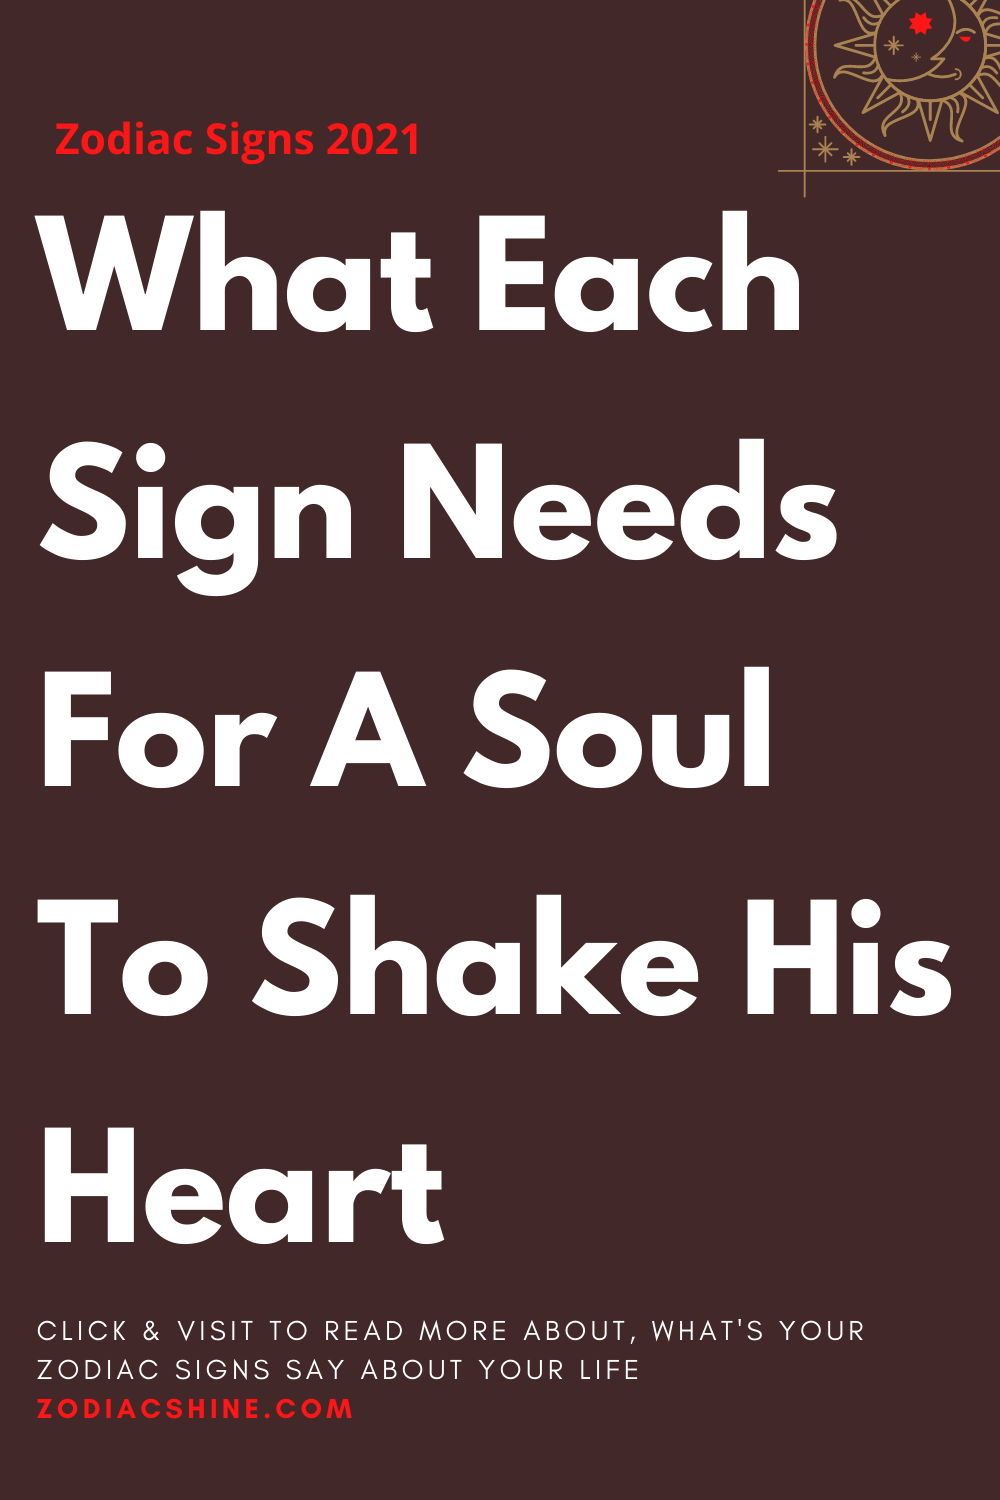 What Each Sign Needs For A Soul To Shake His Heart